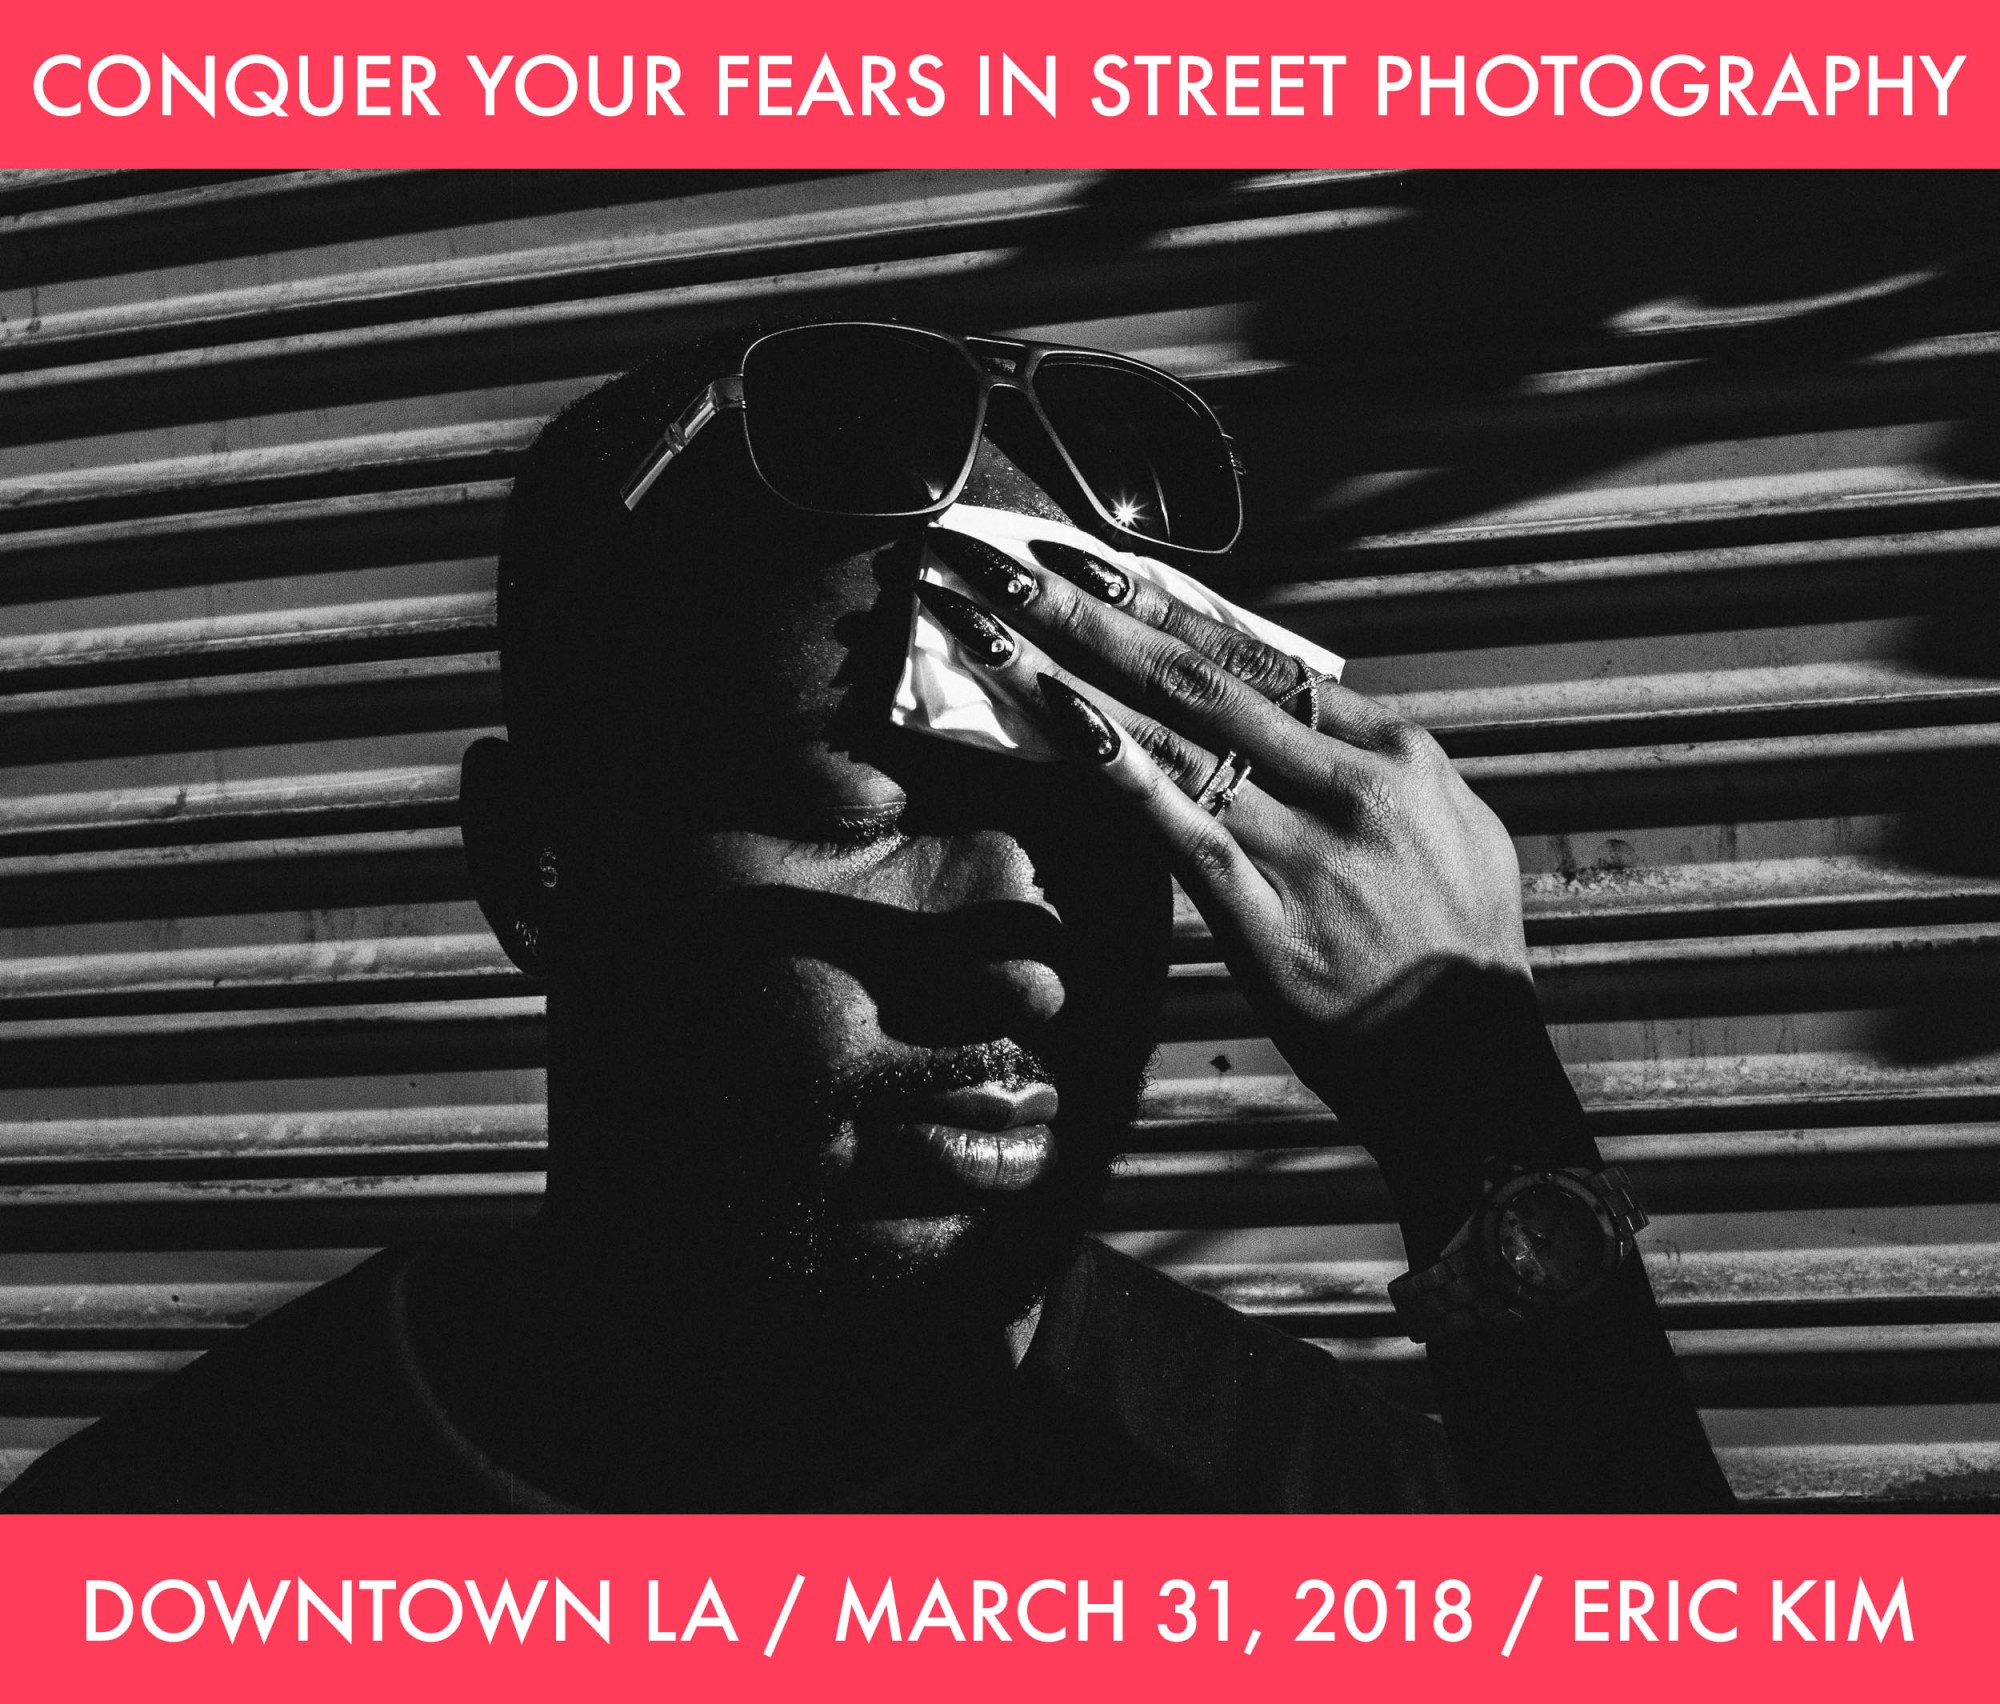 conquer your fears in street photography 2018 - downtown la